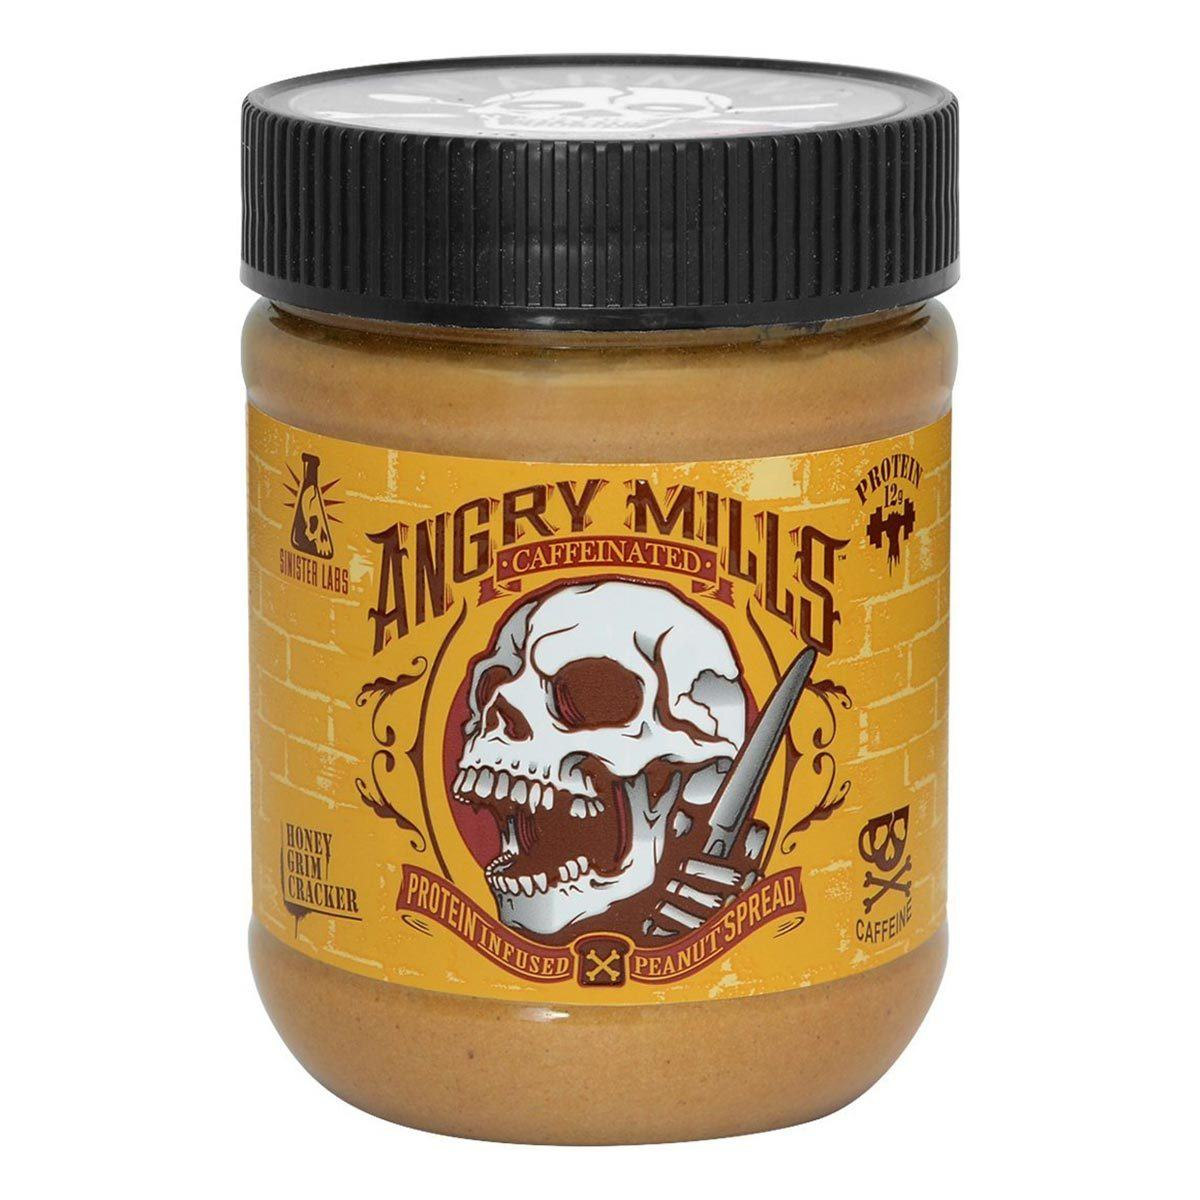 Sinister Labs Angry Mills Caffeinated Protein Infused Peanut Butter Spread Honey Grim Cracker Foods & Snacks Sinister Labs  (1059326099499)